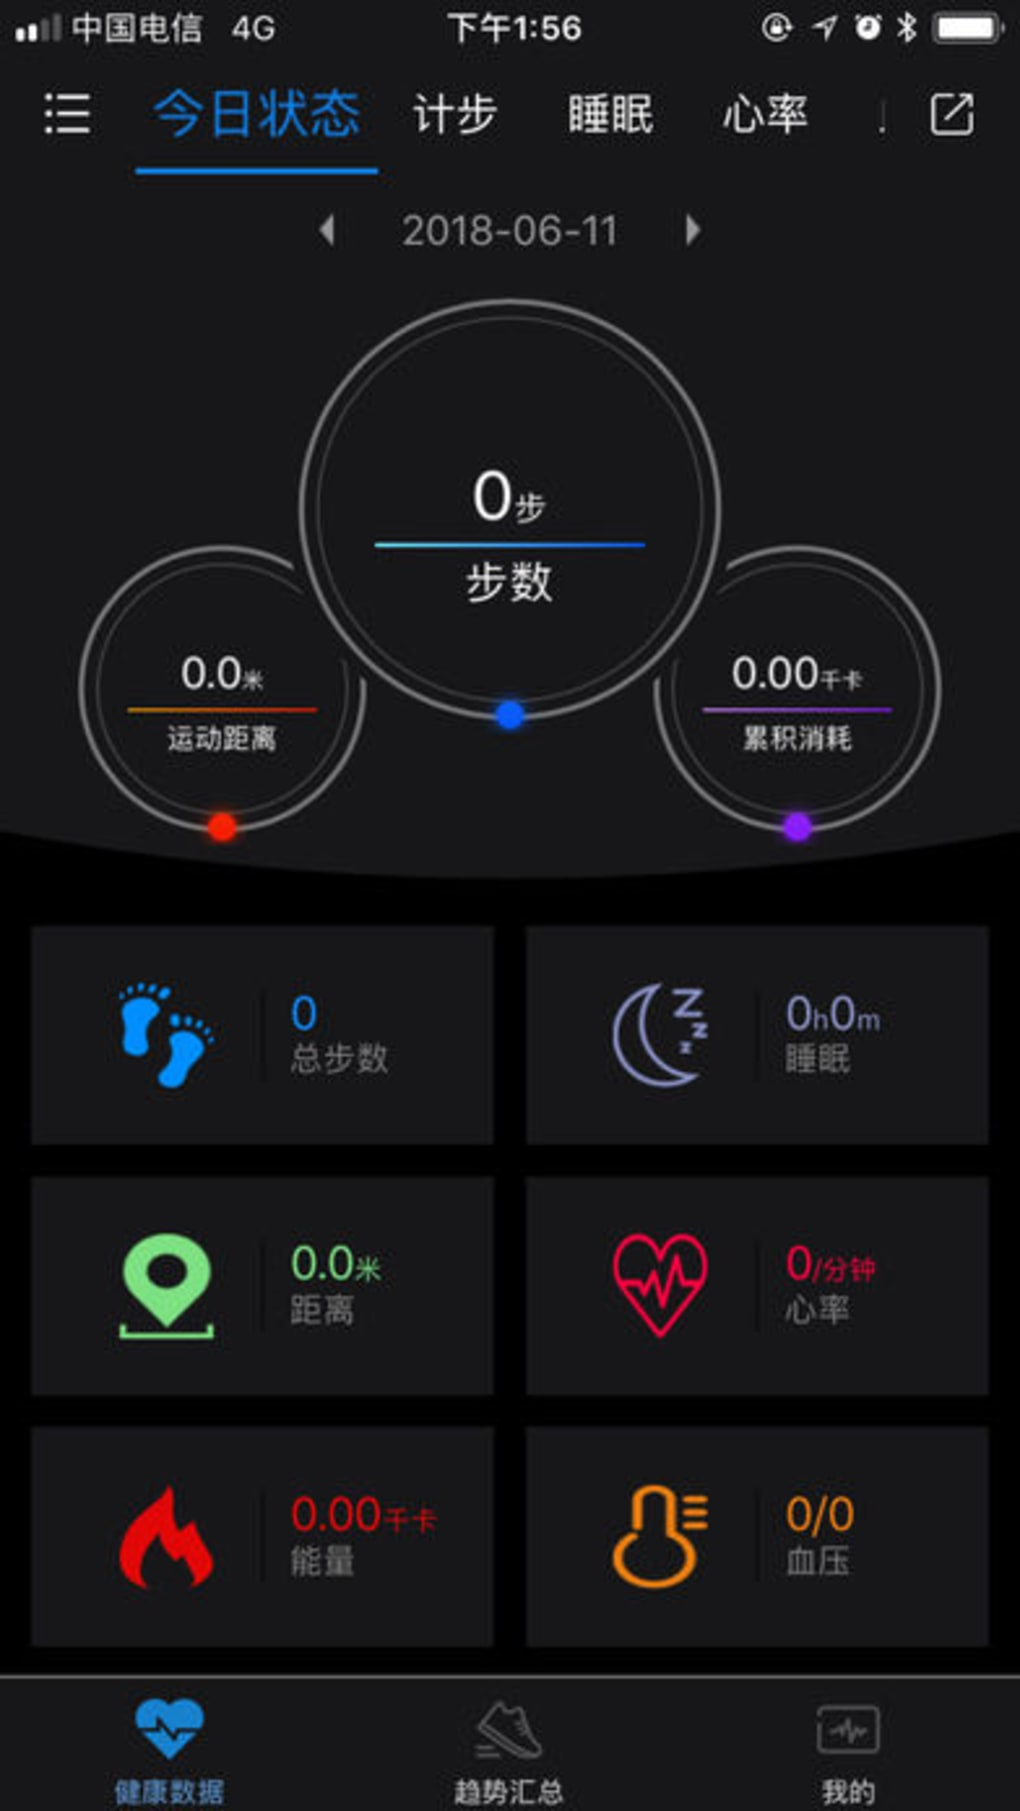 Lefun Health for iPhone - Download